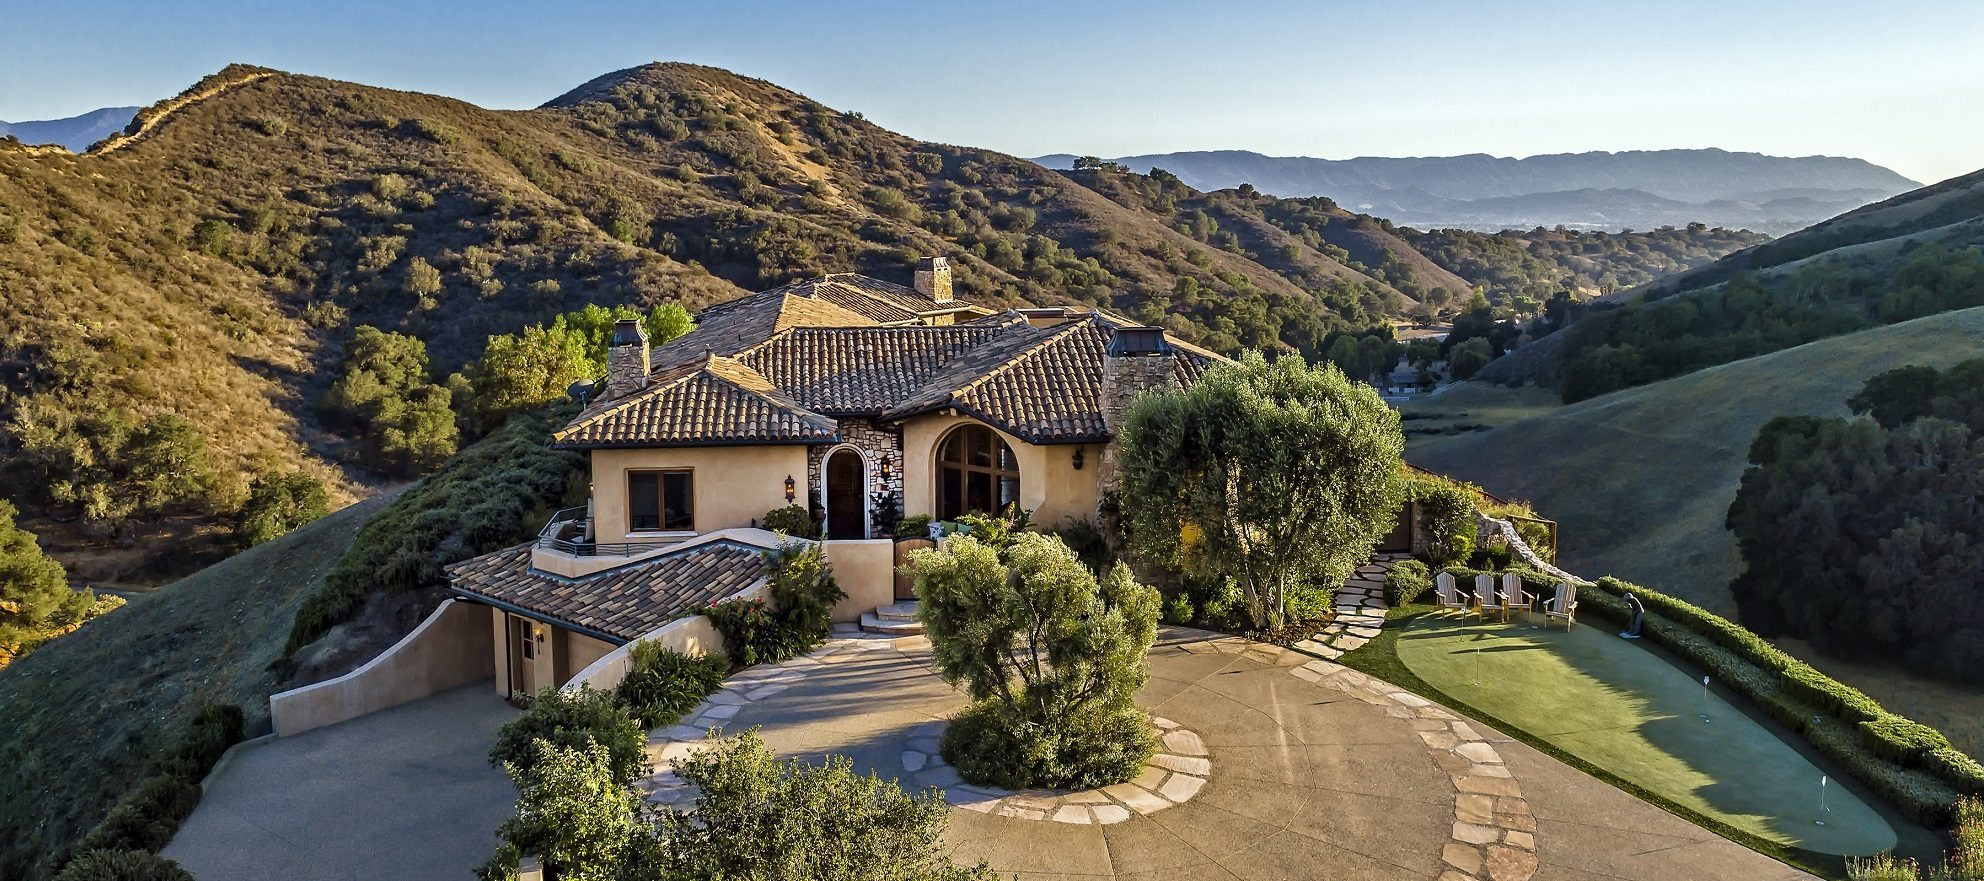 Luxury listing: gated retreat in the mountains